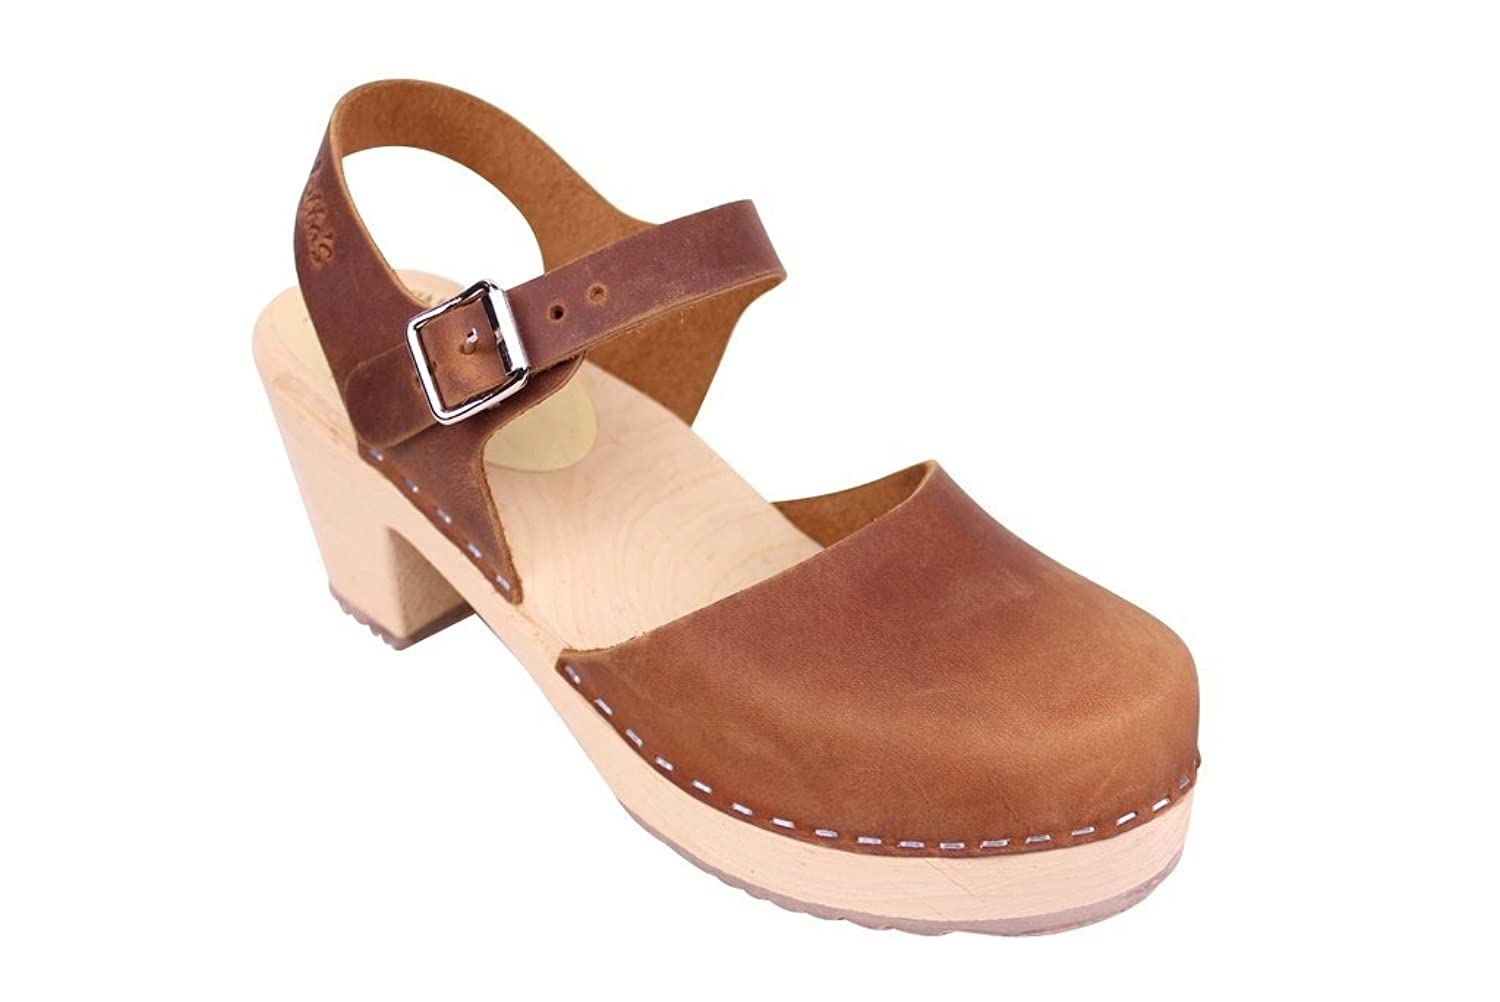 Lotta From Stockholm Highwood Clogs in Brown Oiled Nubuck